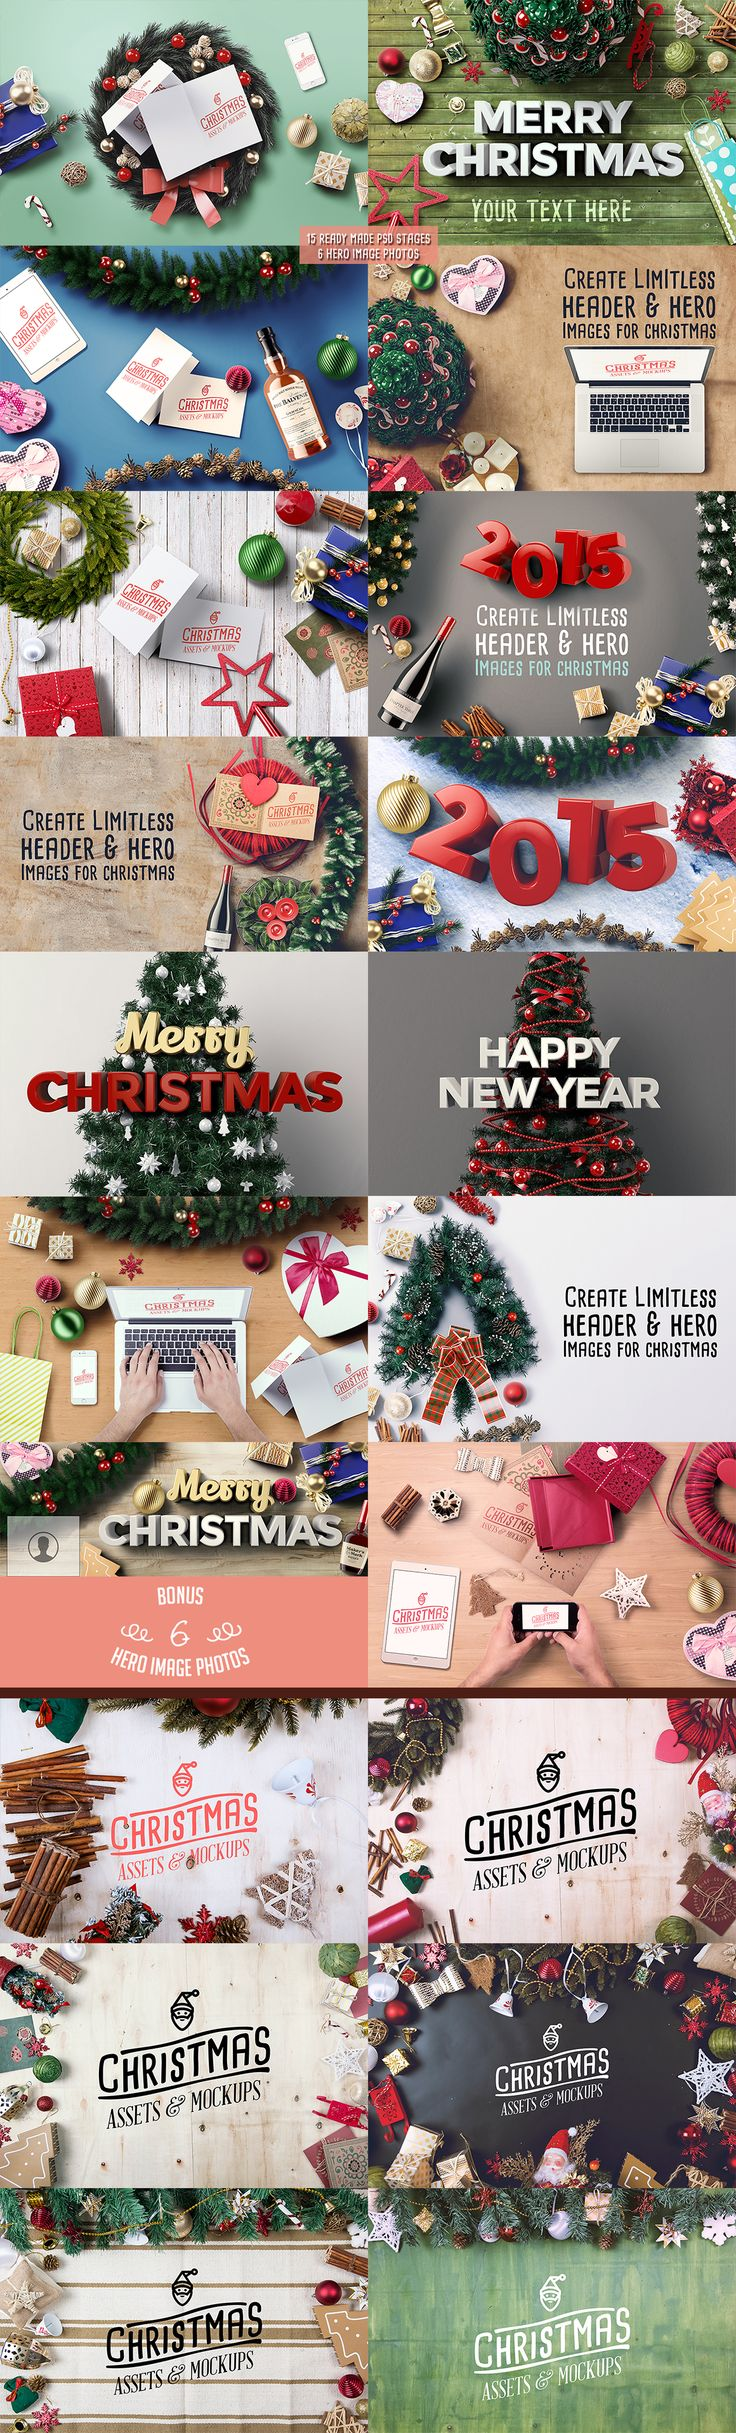 Christmas Assets & Mock Ups by Mockup Zone on Creative Market